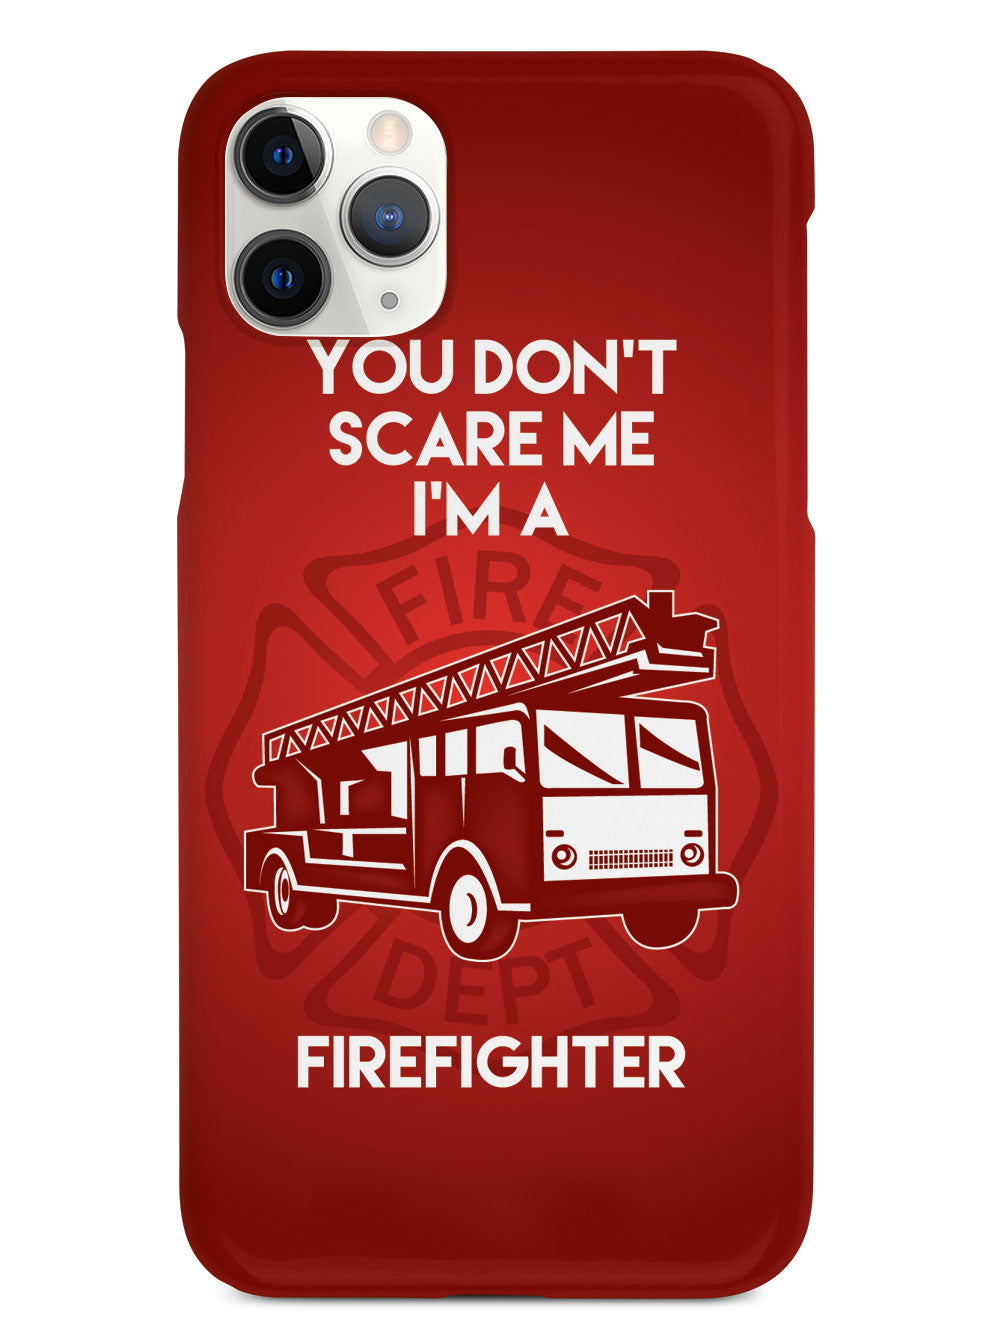 You Don't Scare Me, I'm a Firefighter Case